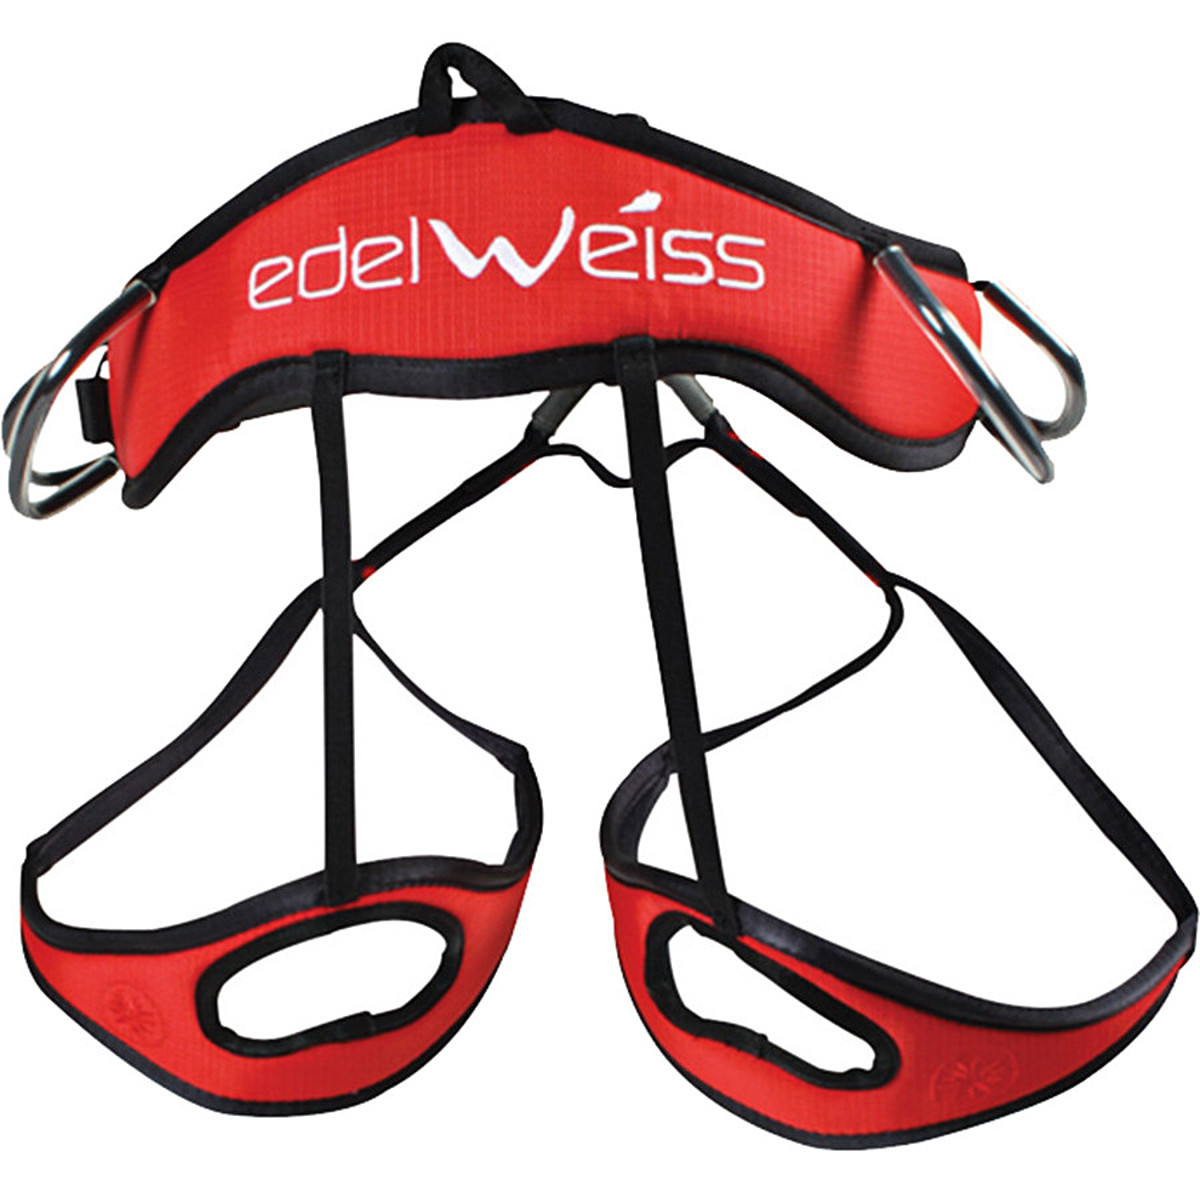 Edelweiss Placebo Harness